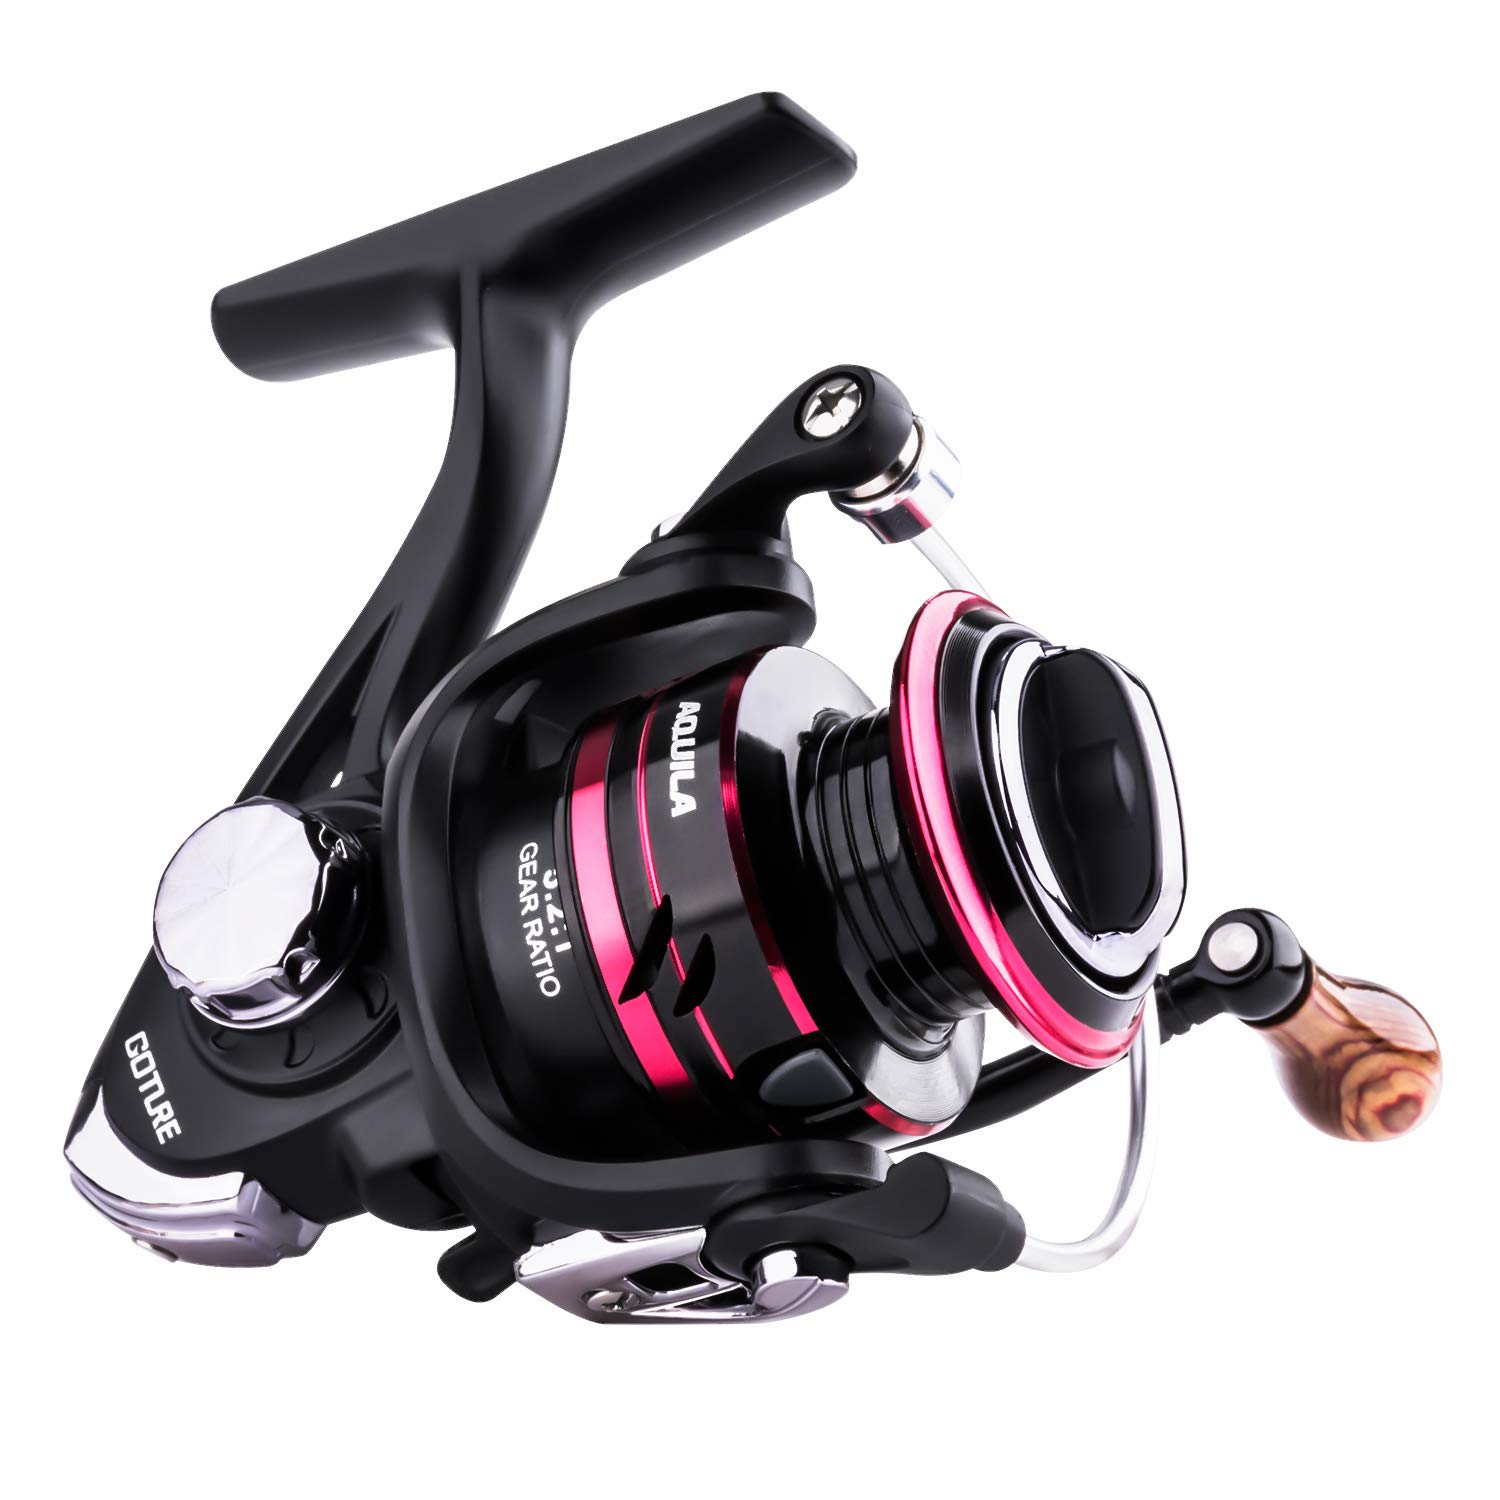 Goture Spinning Reel – Freshwater and Saltwater Fishing Reels Spinning Stainless Steel Bearings Smooth Powerful 5 1 Steel Ball Bearings Up to 17.7lbs of Smooth Drag Ice Fishing Reels